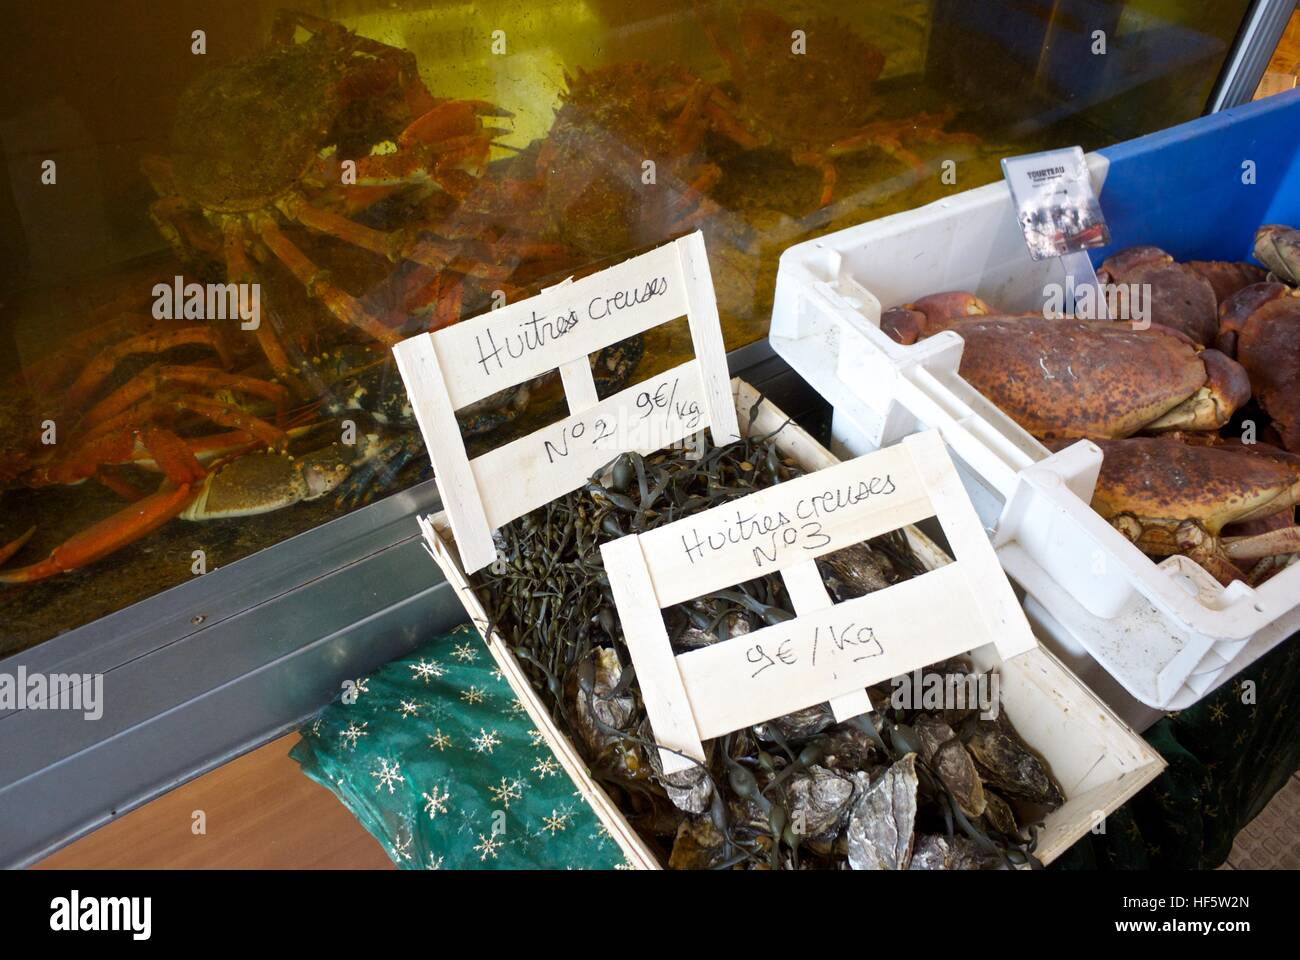 Live seafood for sale at a French Poissonerie - Stock Image